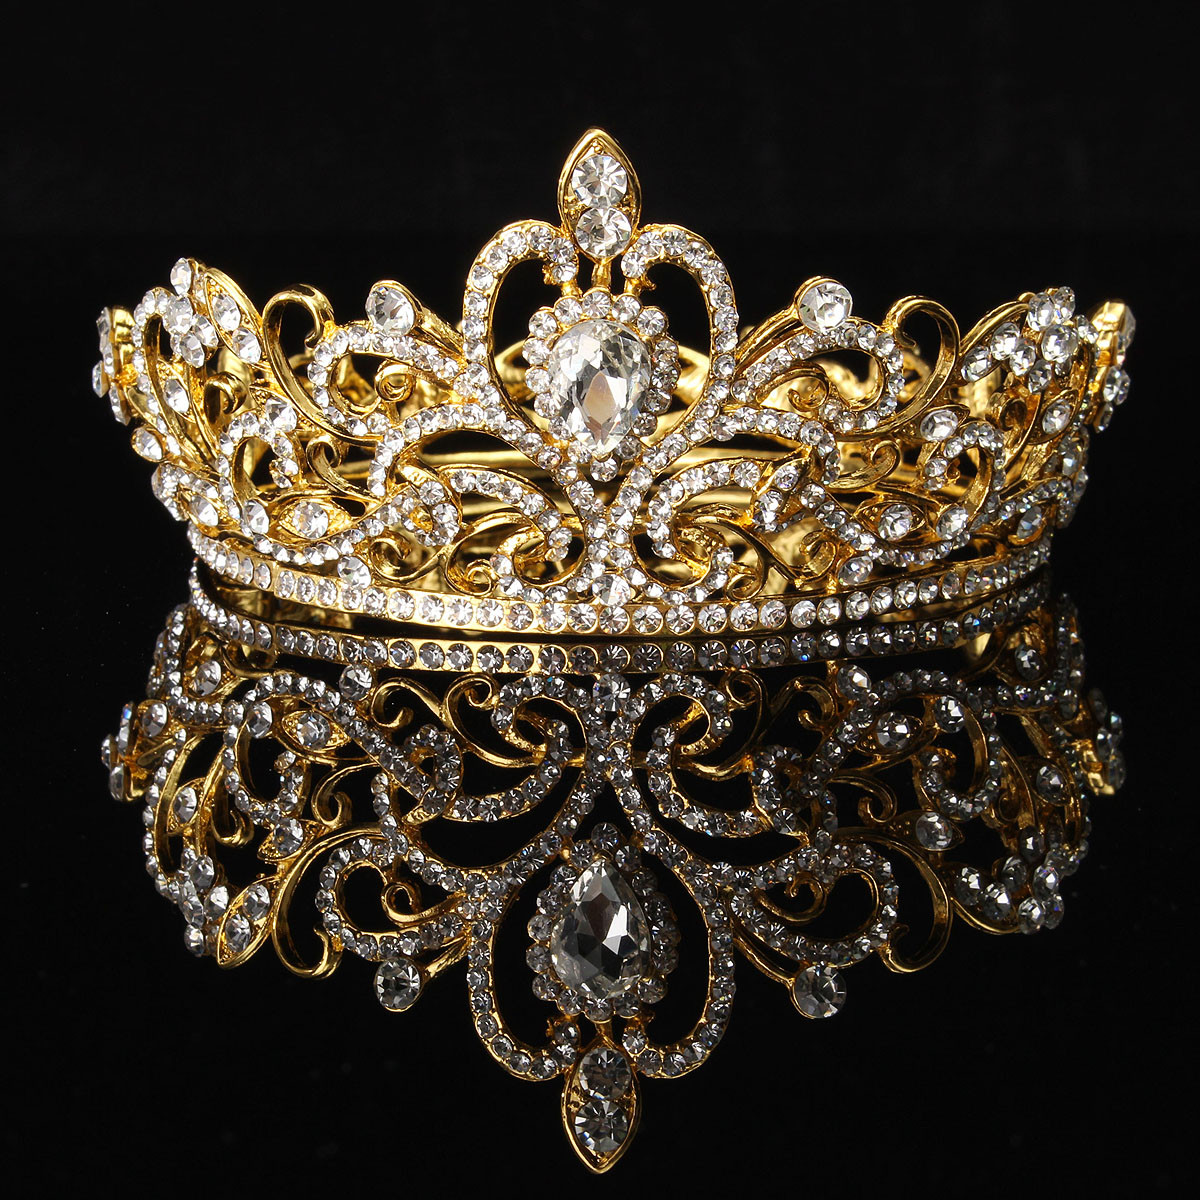 Bride Gold Silver Rhinestone Crystal Crown Tiara Head Jewelry Princess Queen Wedding Headpiece